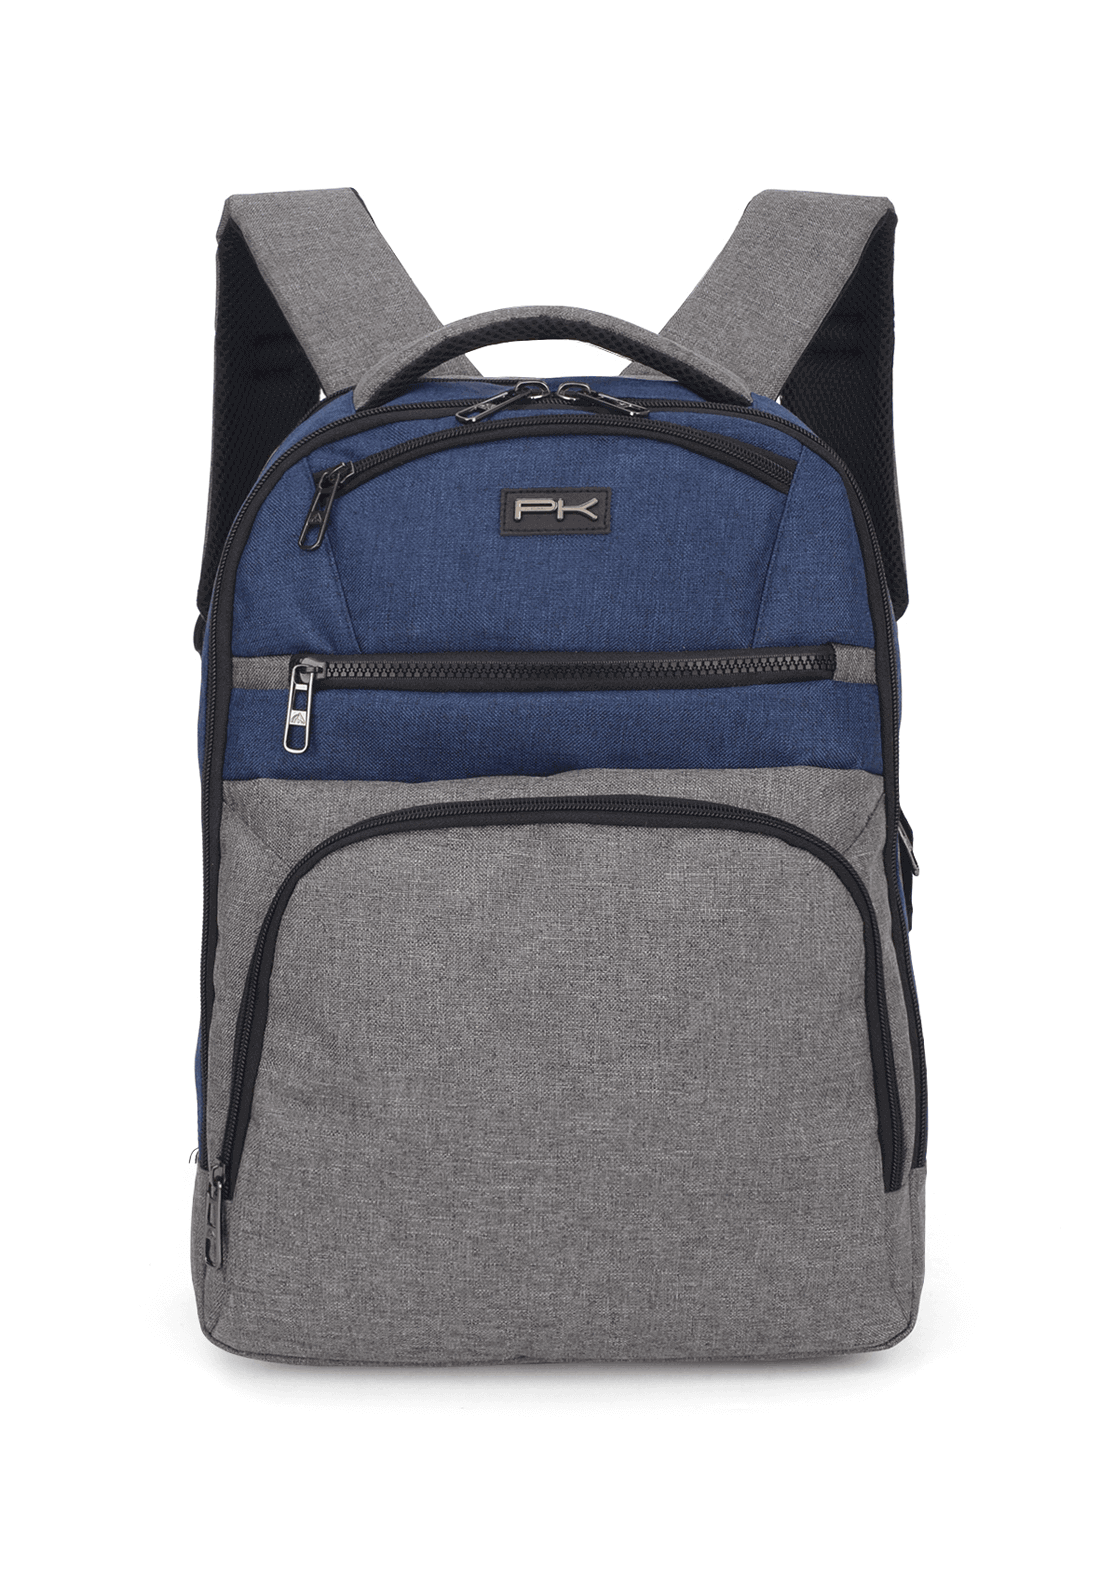 Mochila Executiva Polo King (notebook) - MN51595Pk